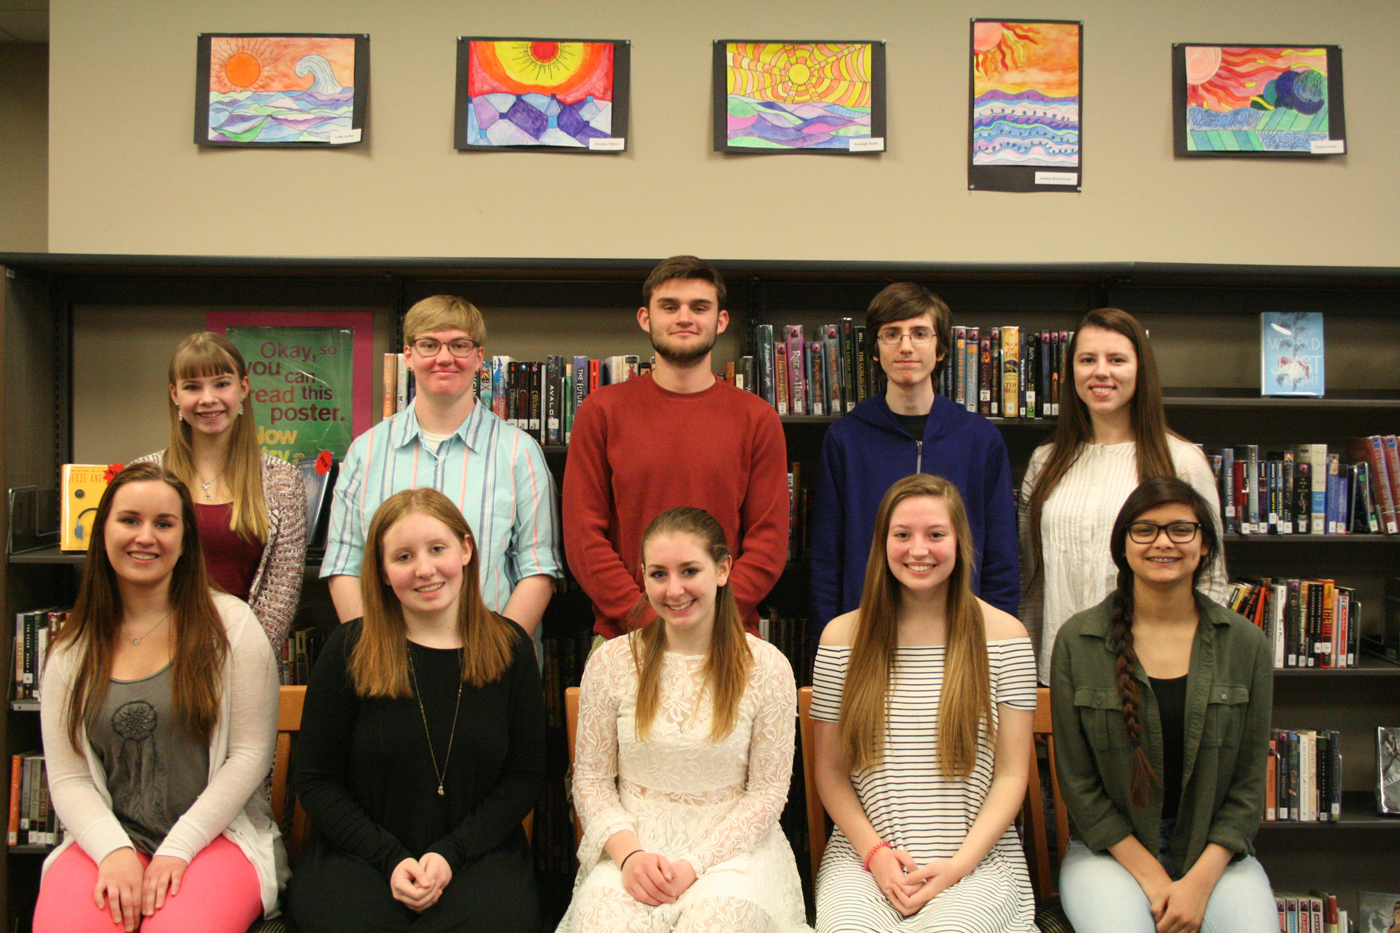 Top 10 Holley High Seniors (l-r):  Front - Corinne Johnson, Megan Hatfield, Brooklynn Bartholomew, Claudia Drechsel and Veronica Mendoza; back - Megan Fribance, Anna Brasted, Christopher Balys, Jesse Beach and Diana Yaroshchuk. Provided photo